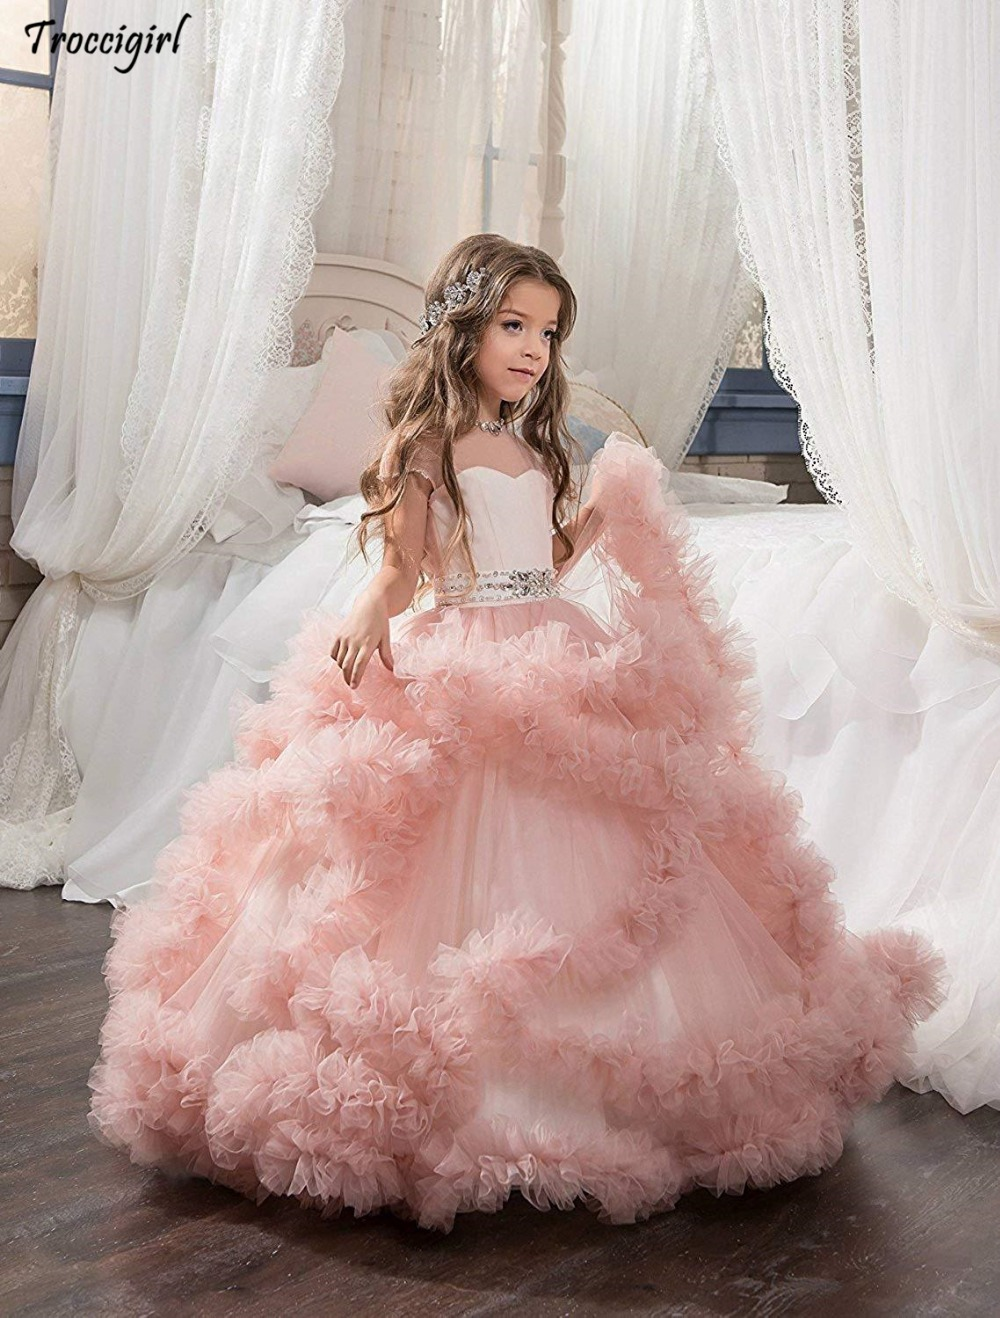 Girl 39 s Pageant Dresses Flower Girl Dress Fancy Tulle Satin Lace Cap Sleeves Pageant Girls Ball Gown Pink Ivory in Flower Girl Dresses from Weddings amp Events